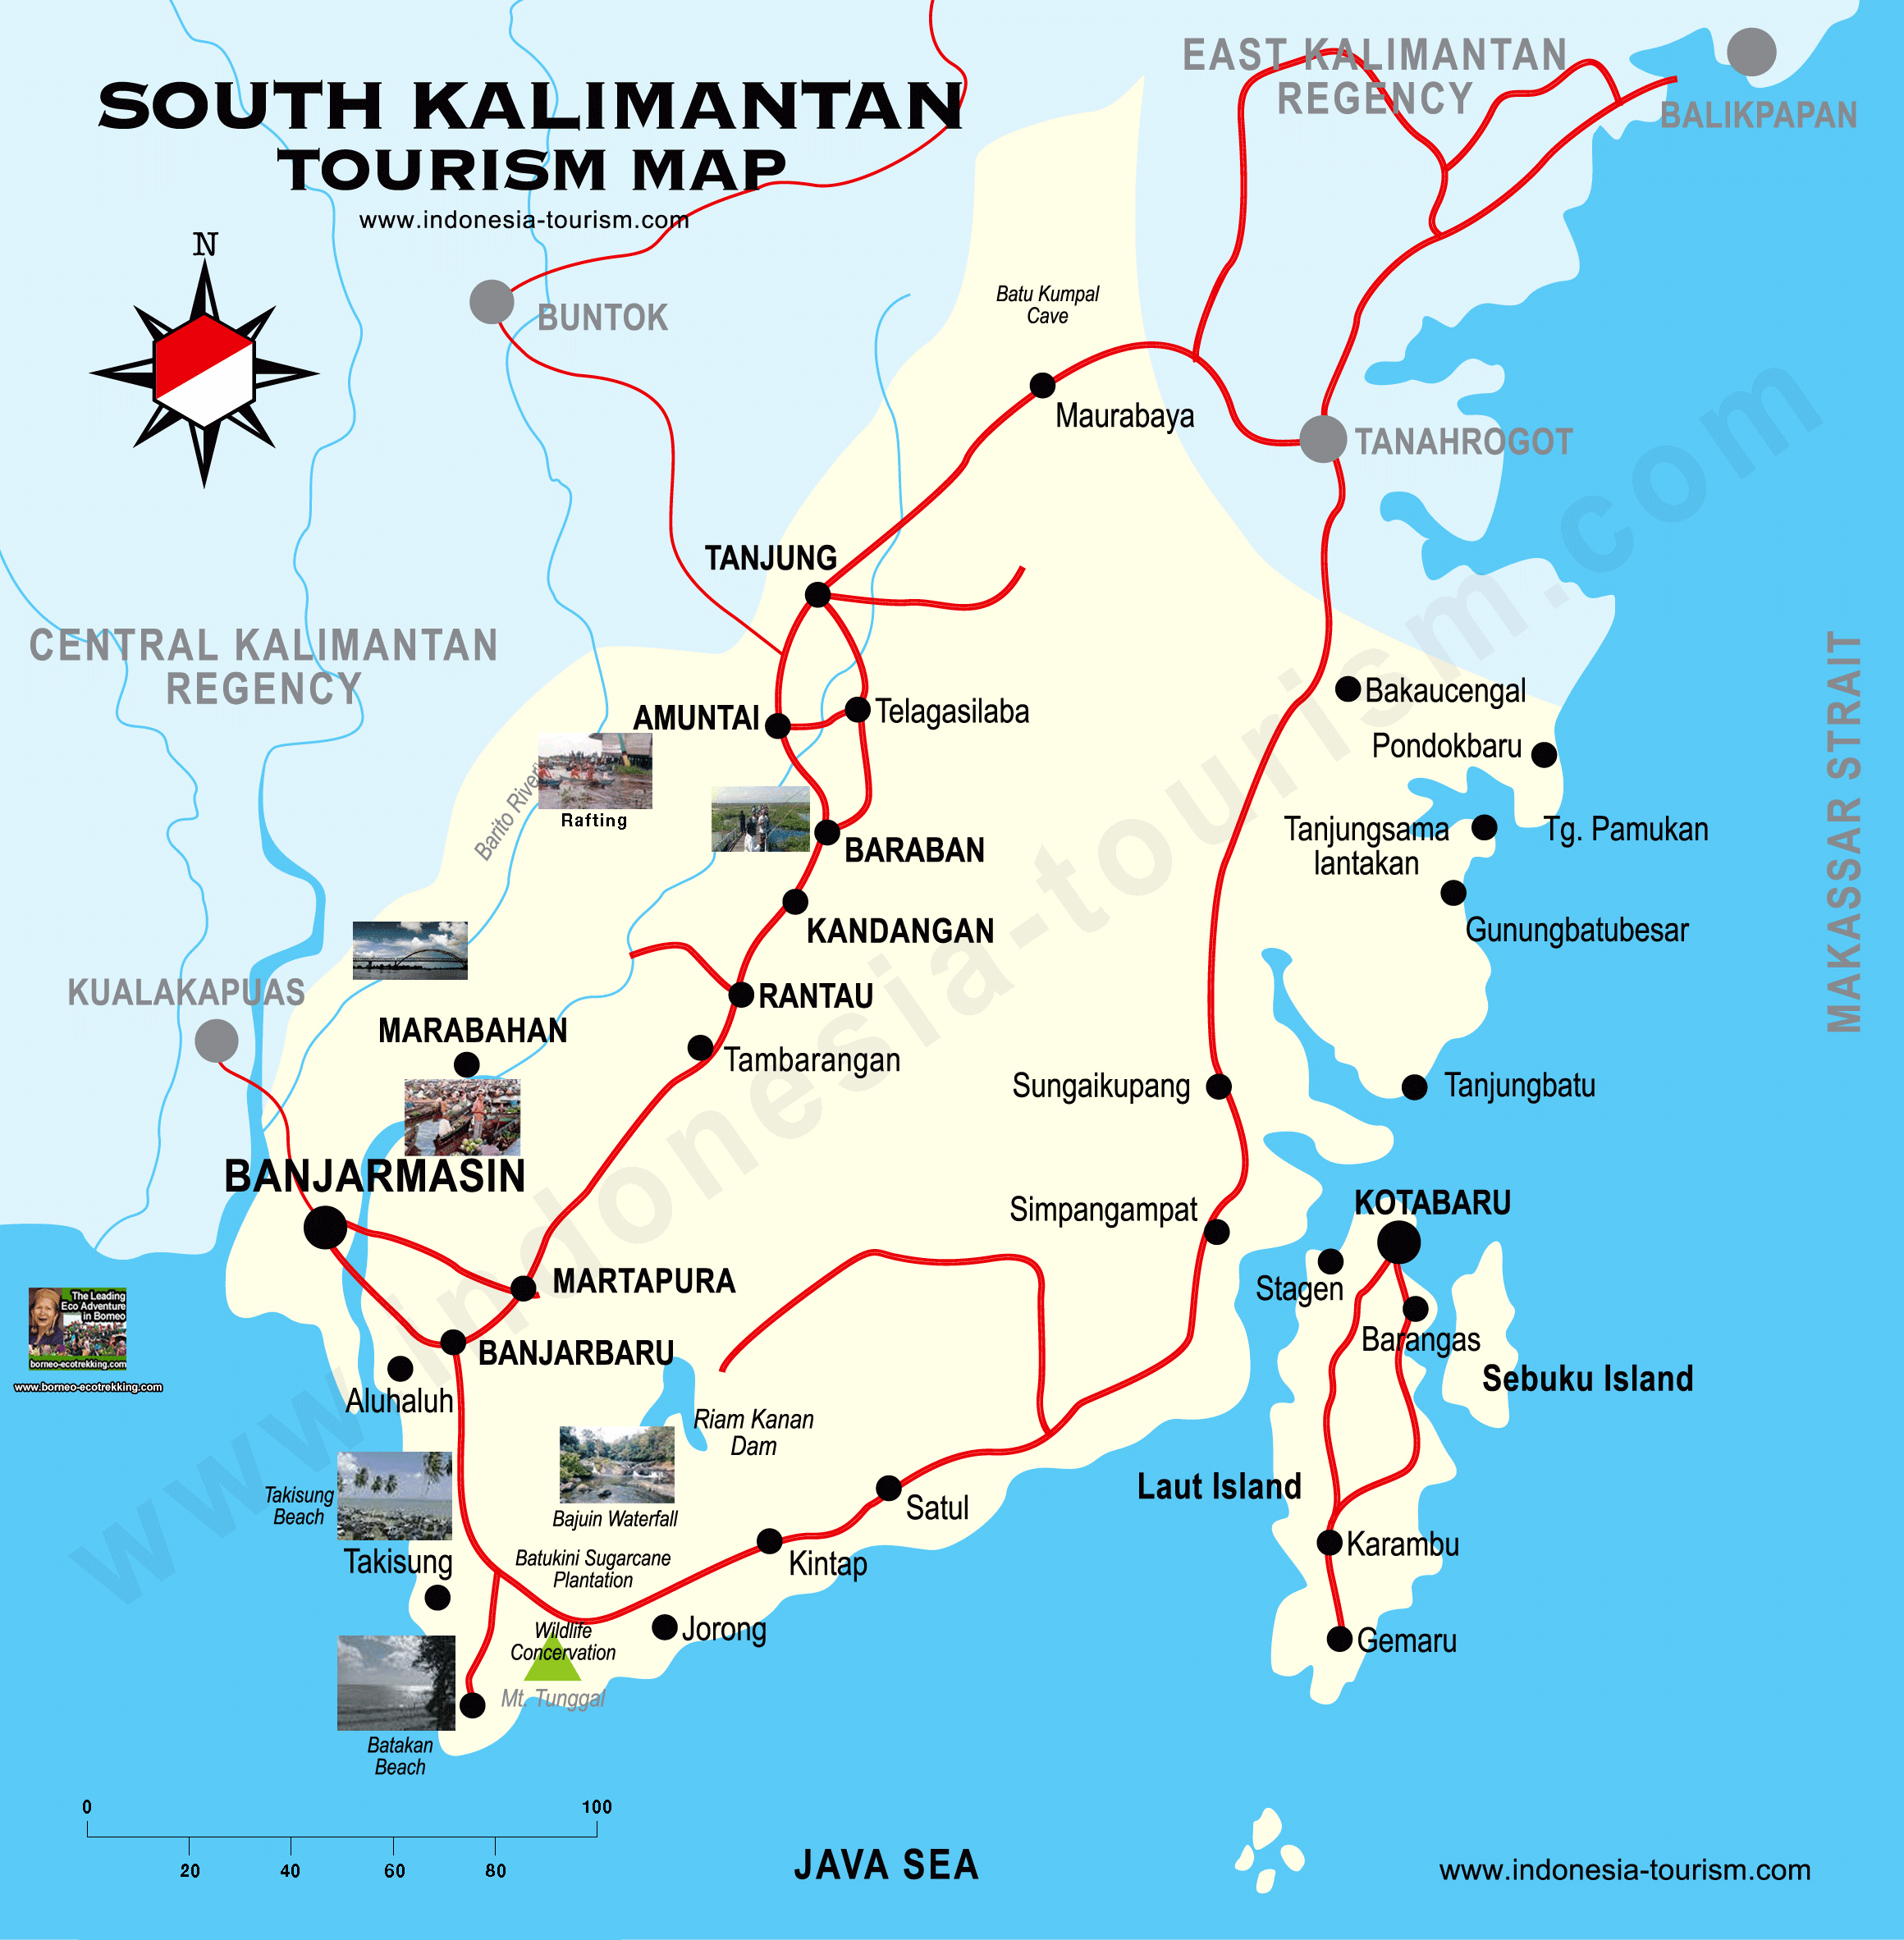 SOUTH BORNEO - KALIMANTAN TOURISM MAP